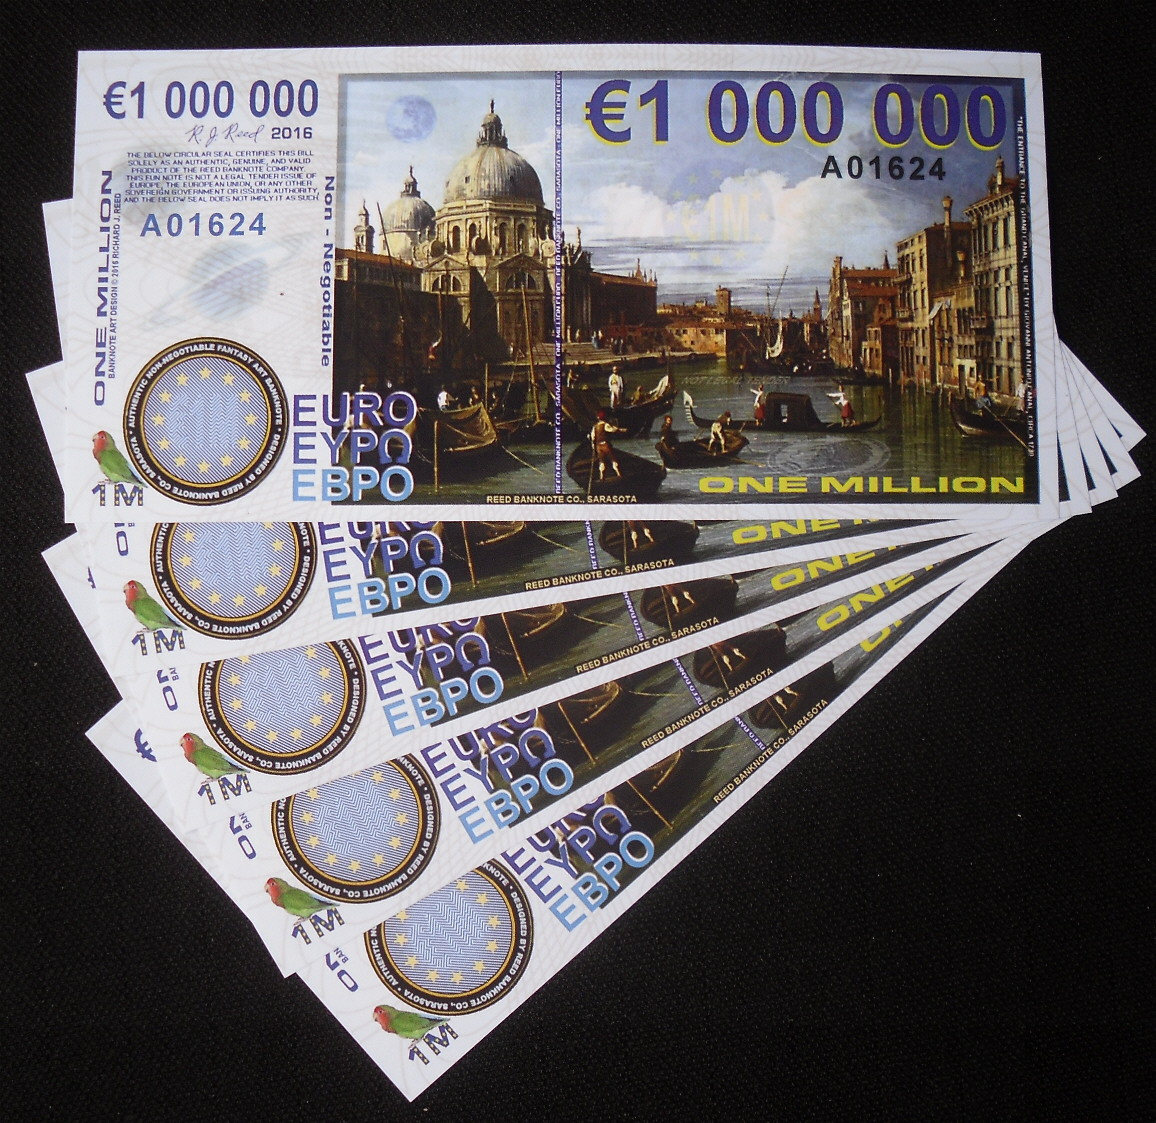 Details About Lot Of 5 Europe One Million Euro Polymer Copernicus Star Trek Fantasy Art Notes